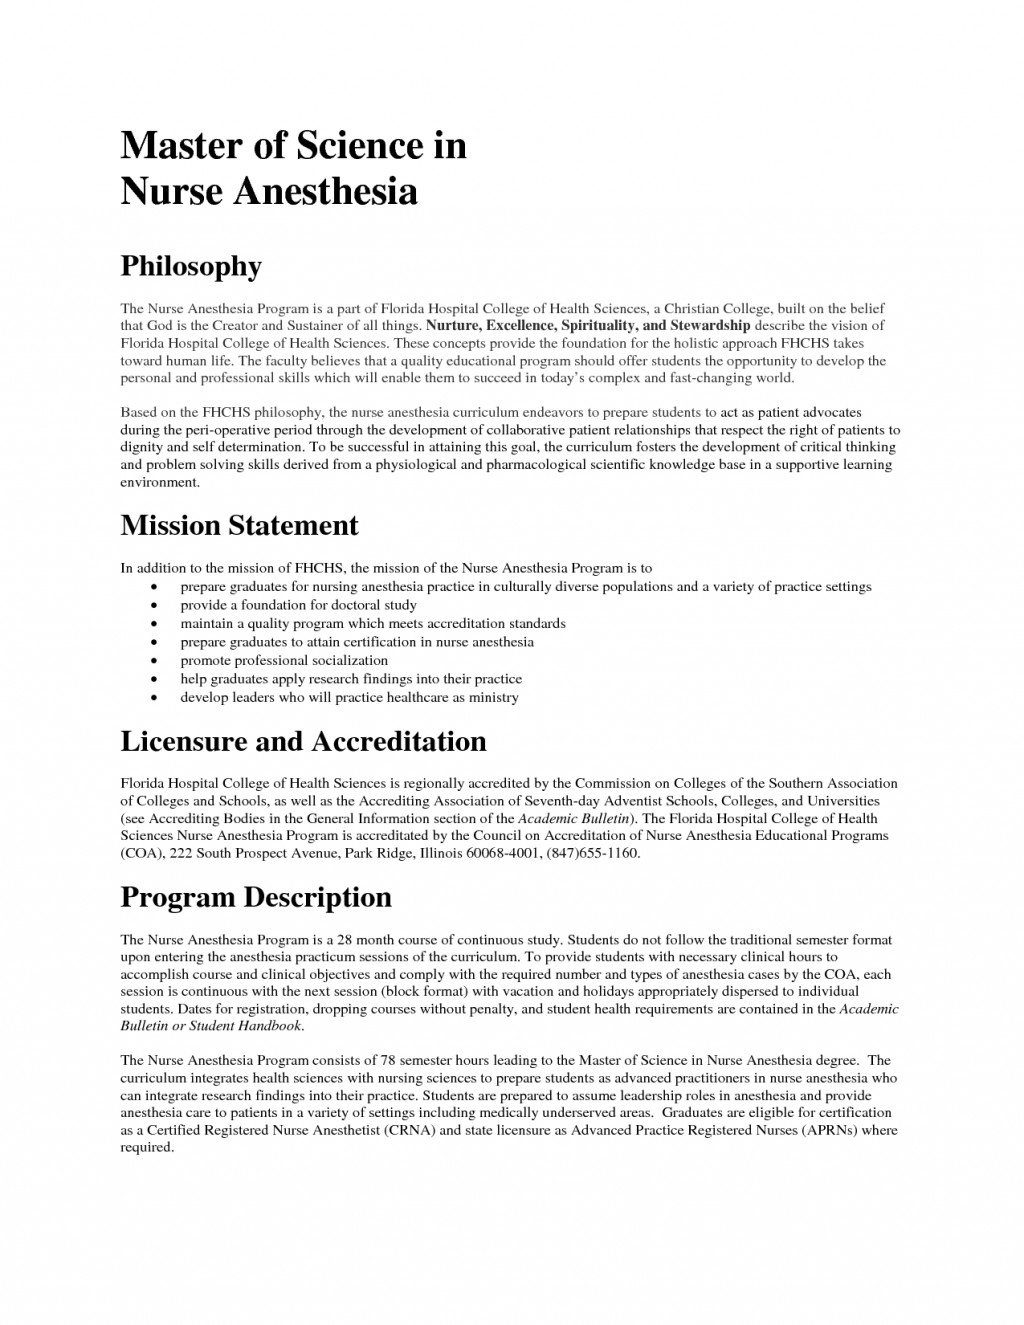 013 Career Goal Essay Nursing Statement Examples What Are Your Personal And Goals Academic Example Imposing On Profession In Nigeria Professionalism Large